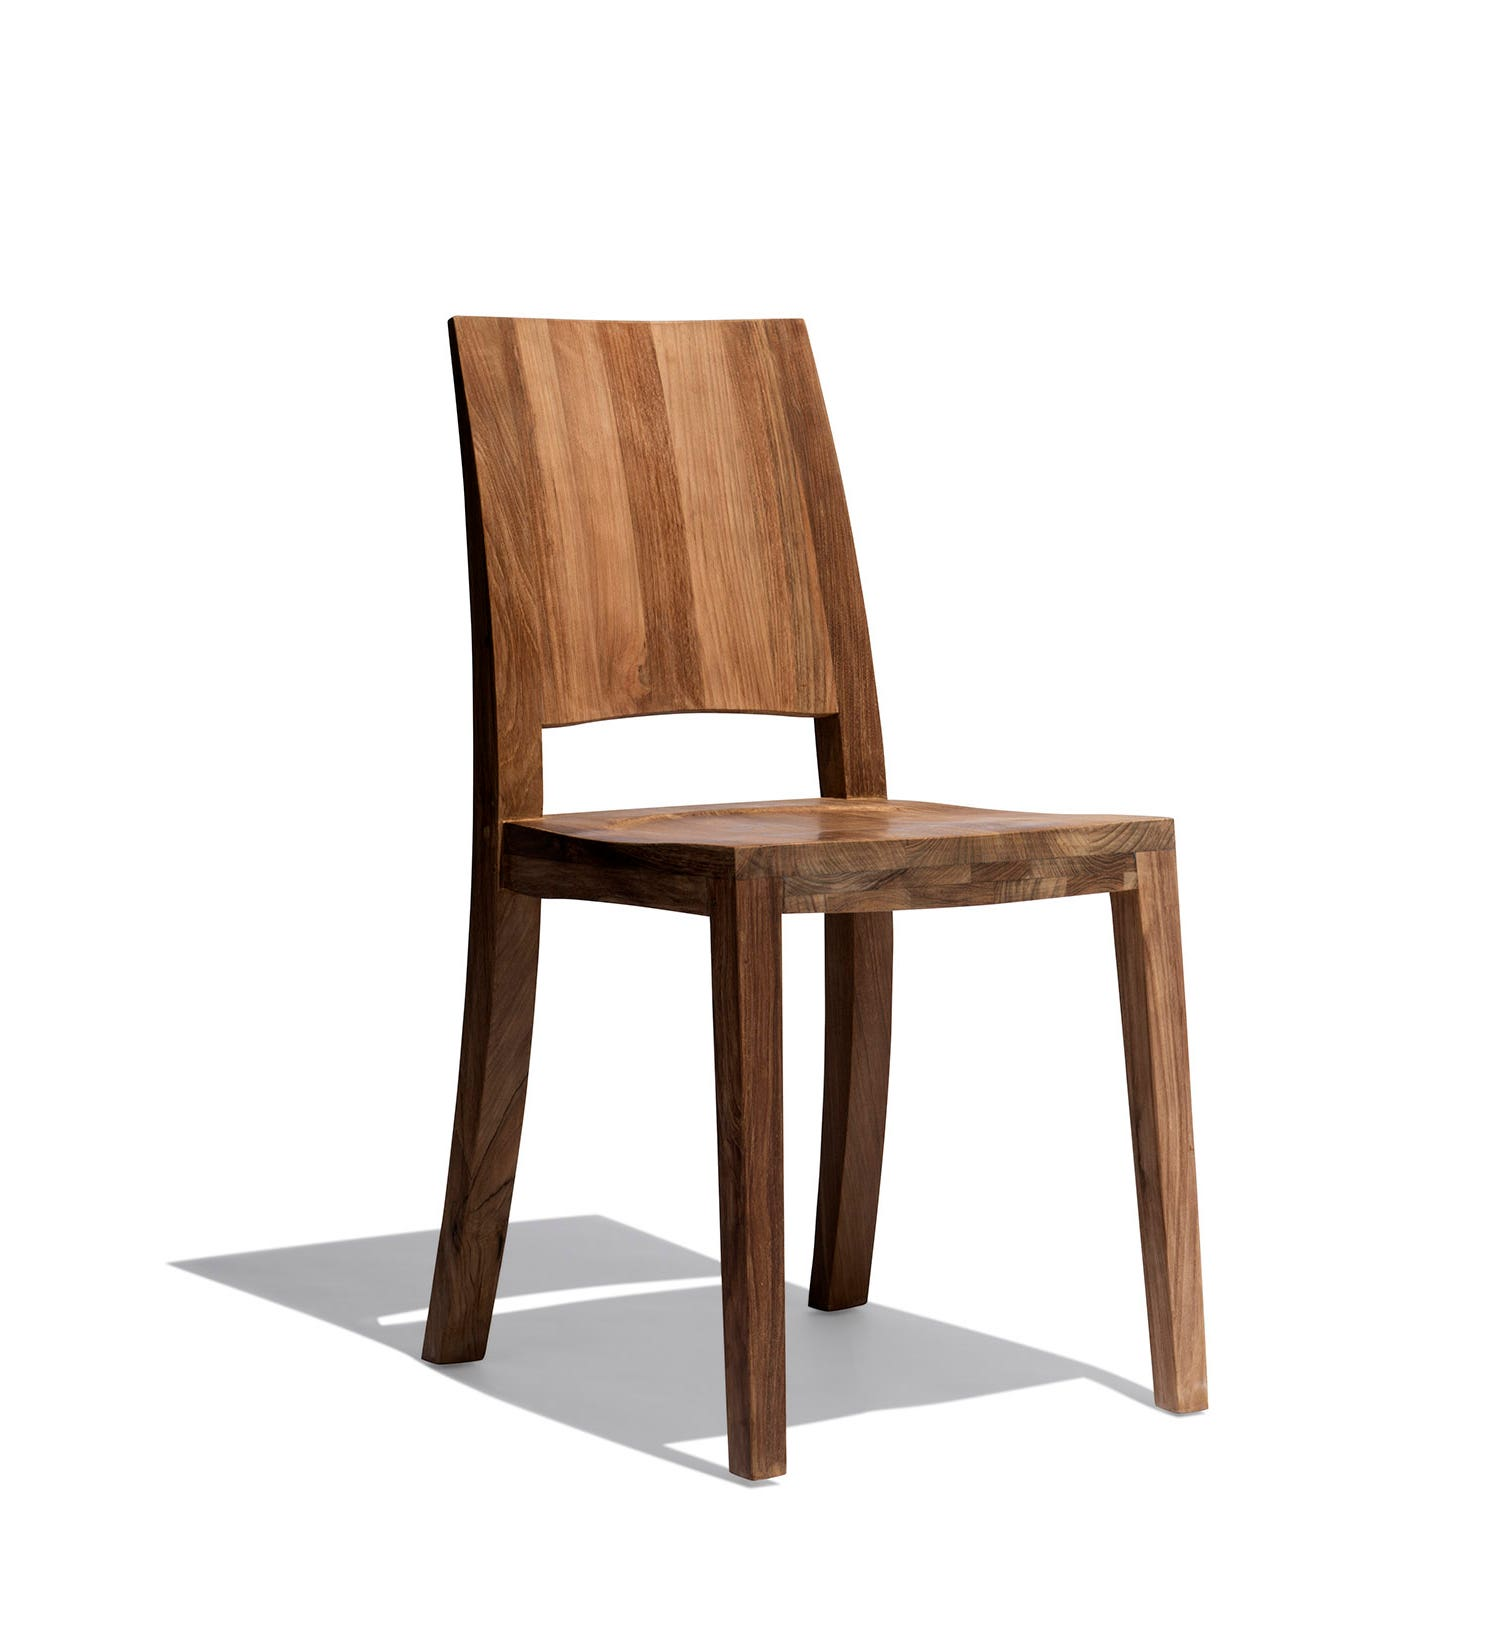 Wooden chairs with armrest - Industry West Archetype Chair